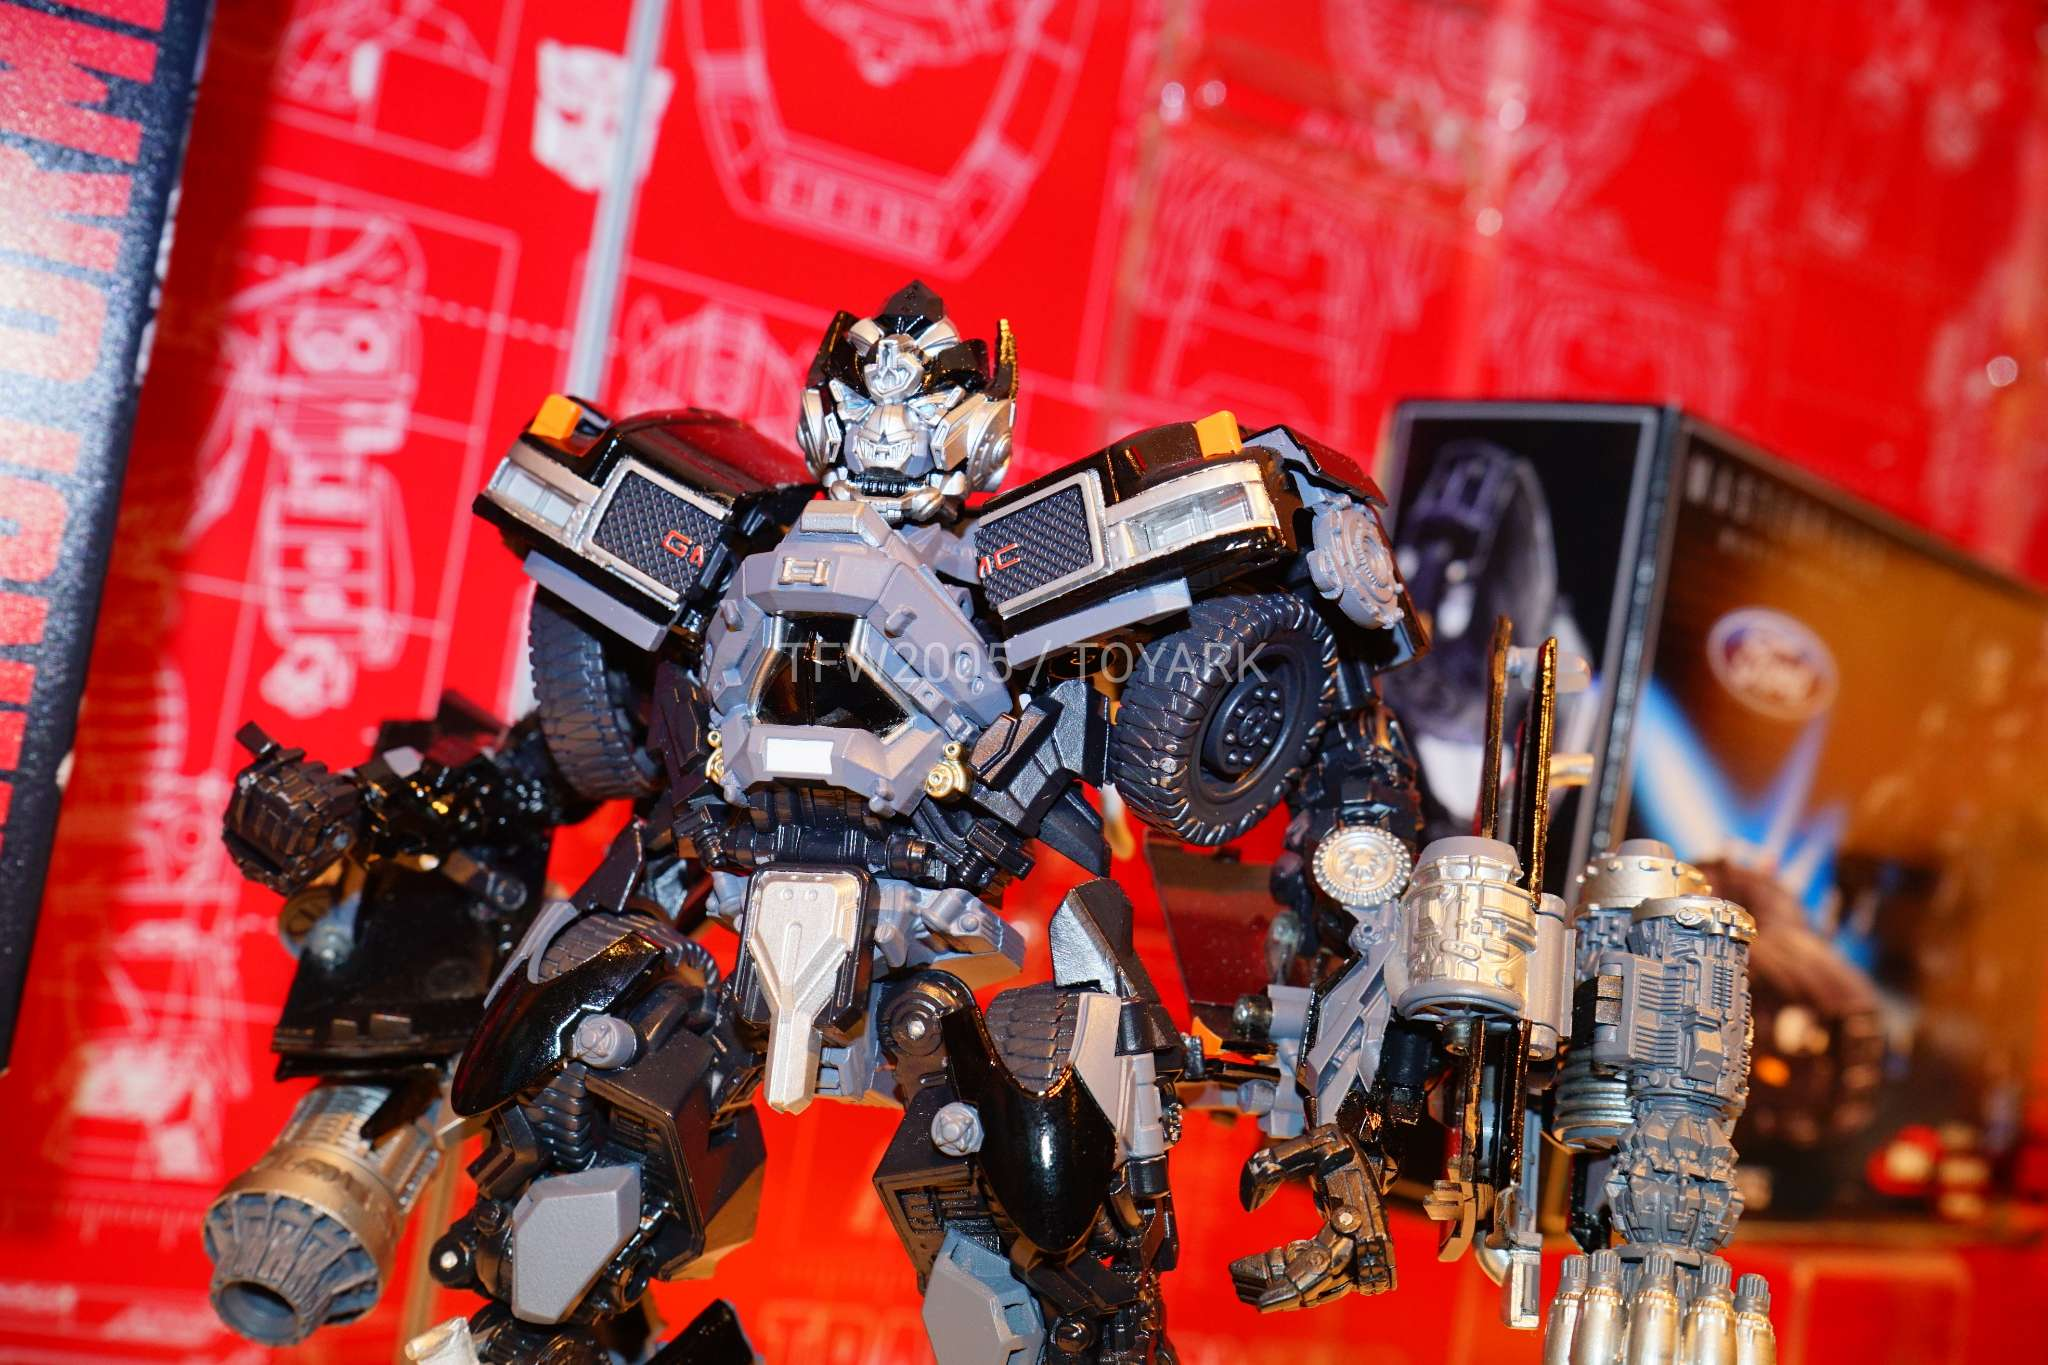 Not Toys For 2018 From Moive : Toy fair transformers movie masterpiece images